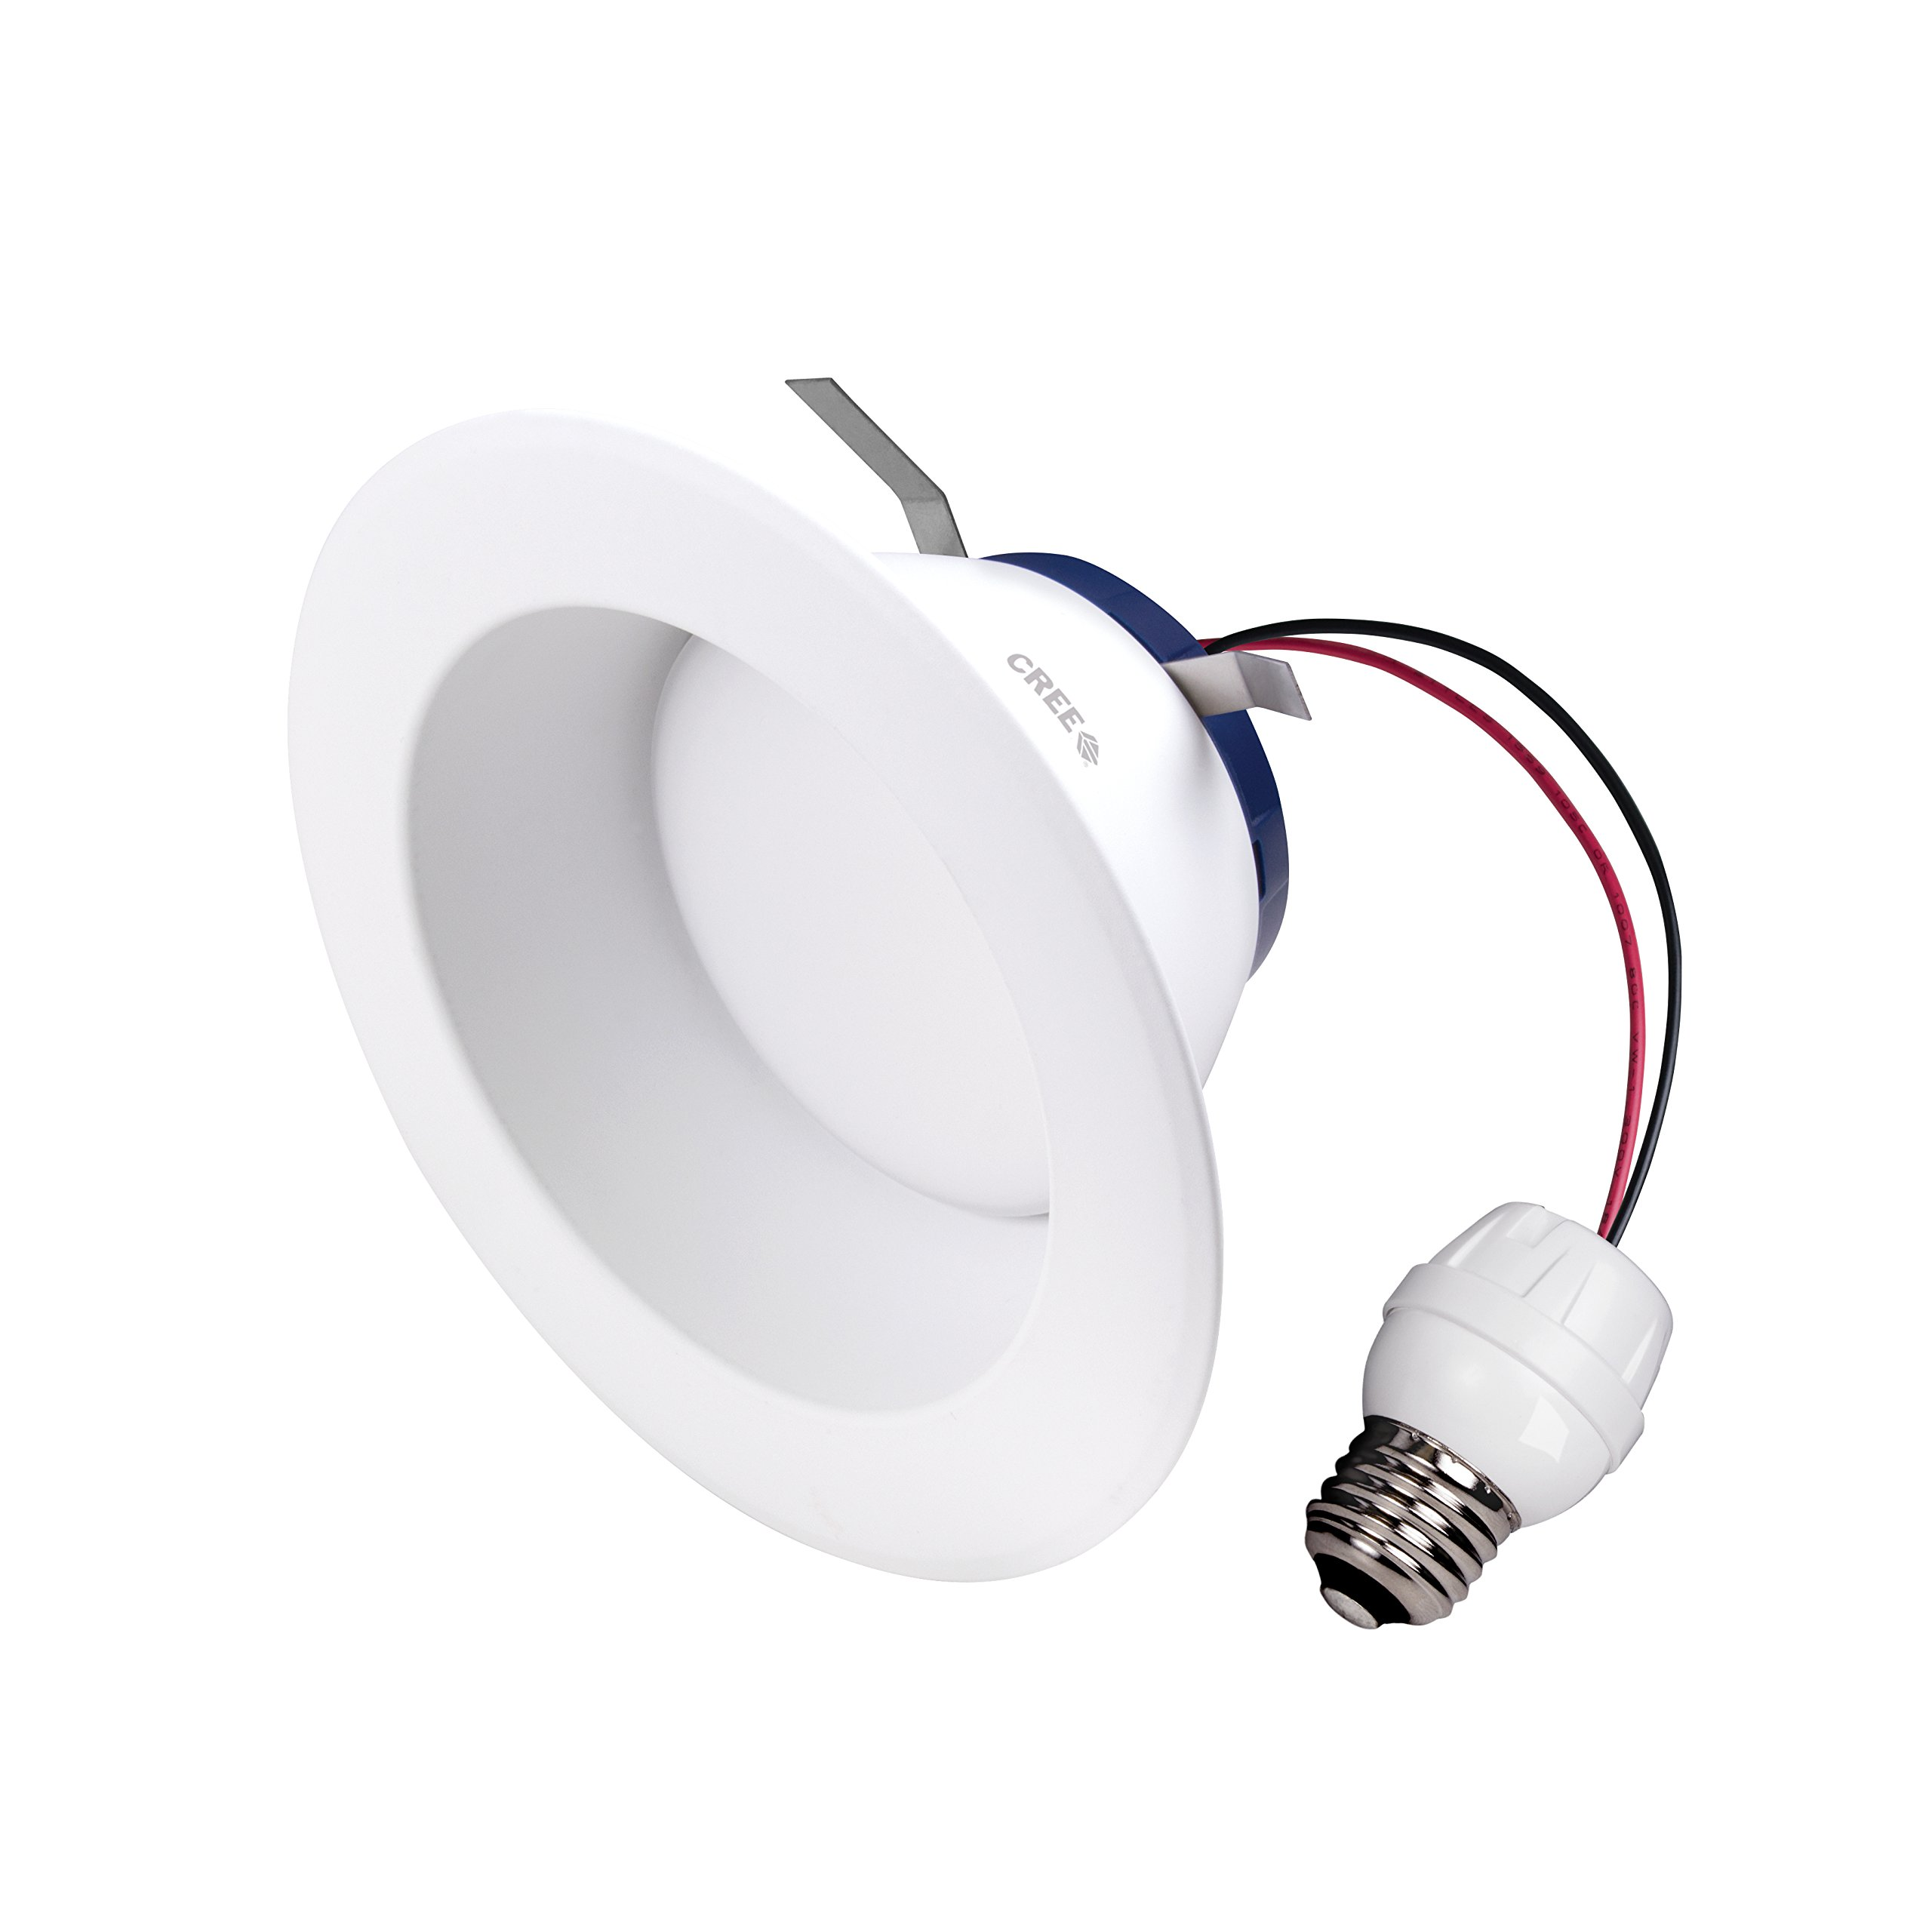 Cree TW Series 6 in. 65W Equivalent Soft White (2700K) LED Retrofit Recessed Downlight by Cree